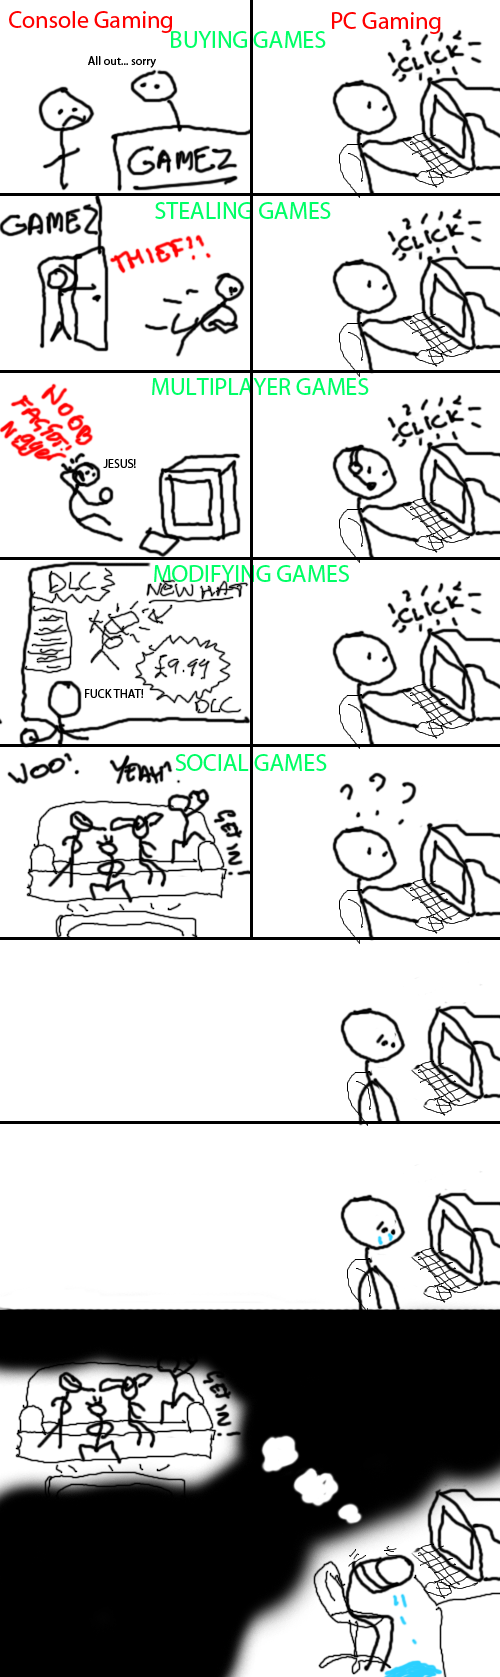 PC Gamers vs. Console Gamers... - 9GAG |Pc Gamers Vs Console Gamers